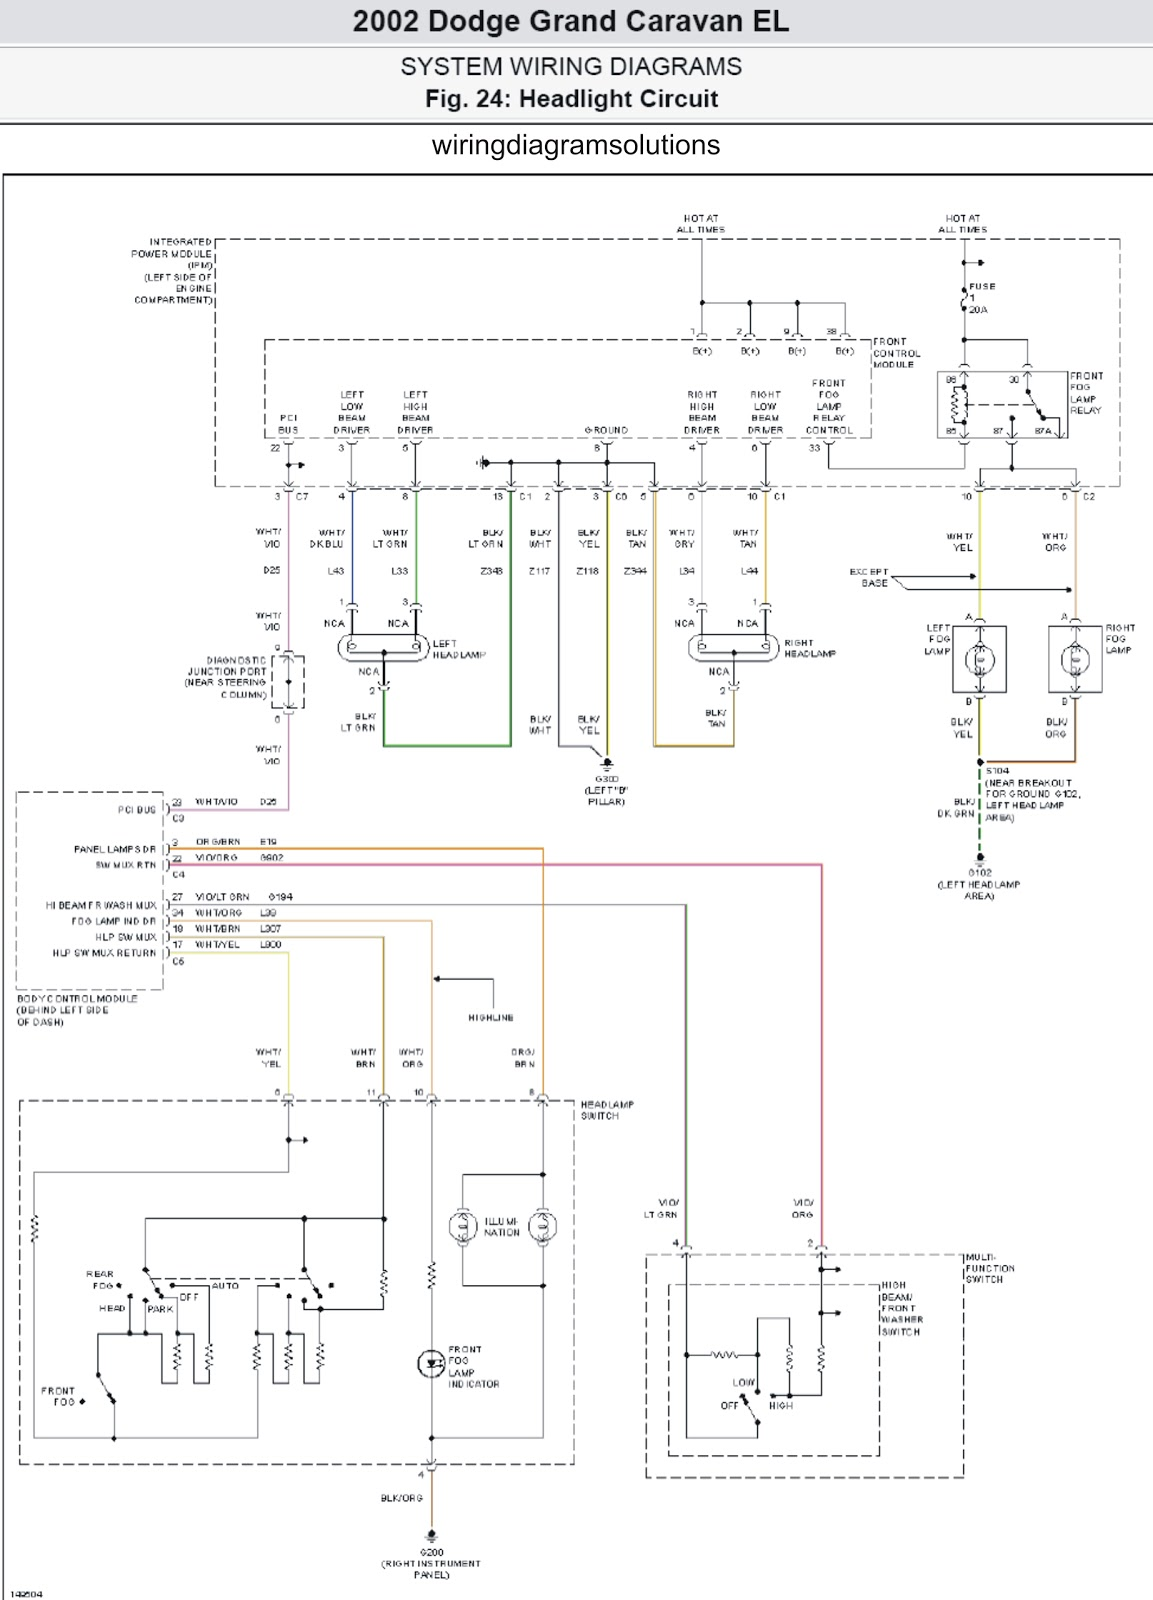 Wiring Diagram 1996 Plymouth Voyager Download Diagrams 00 Chrysler Grand Fuse Box 2002 Dodge Caravan El System 1997 Problems 94